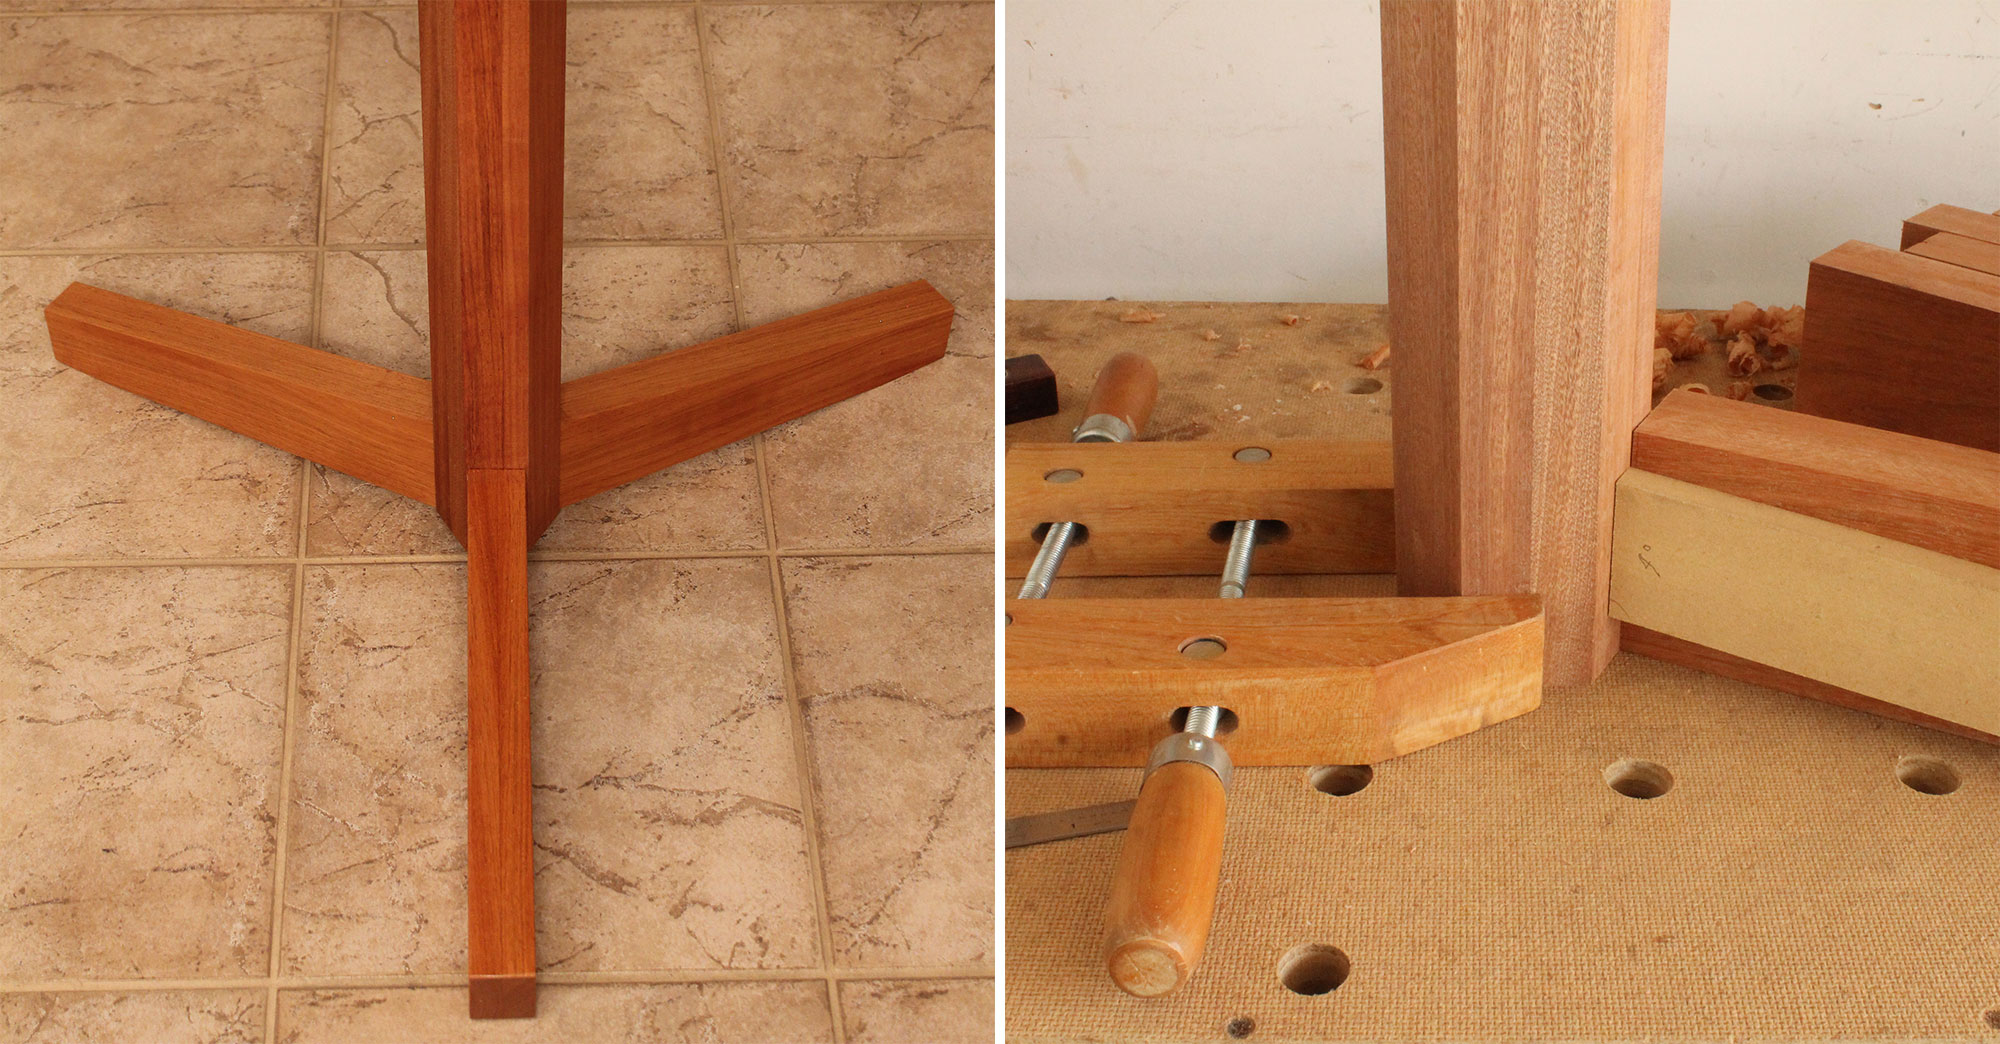 Left: The angle of cut for this three-legged table's feet was determined without using any calculations. Right: The author held a mock-up foot to the pedestal to see the elevation of the foot relative to the floor.